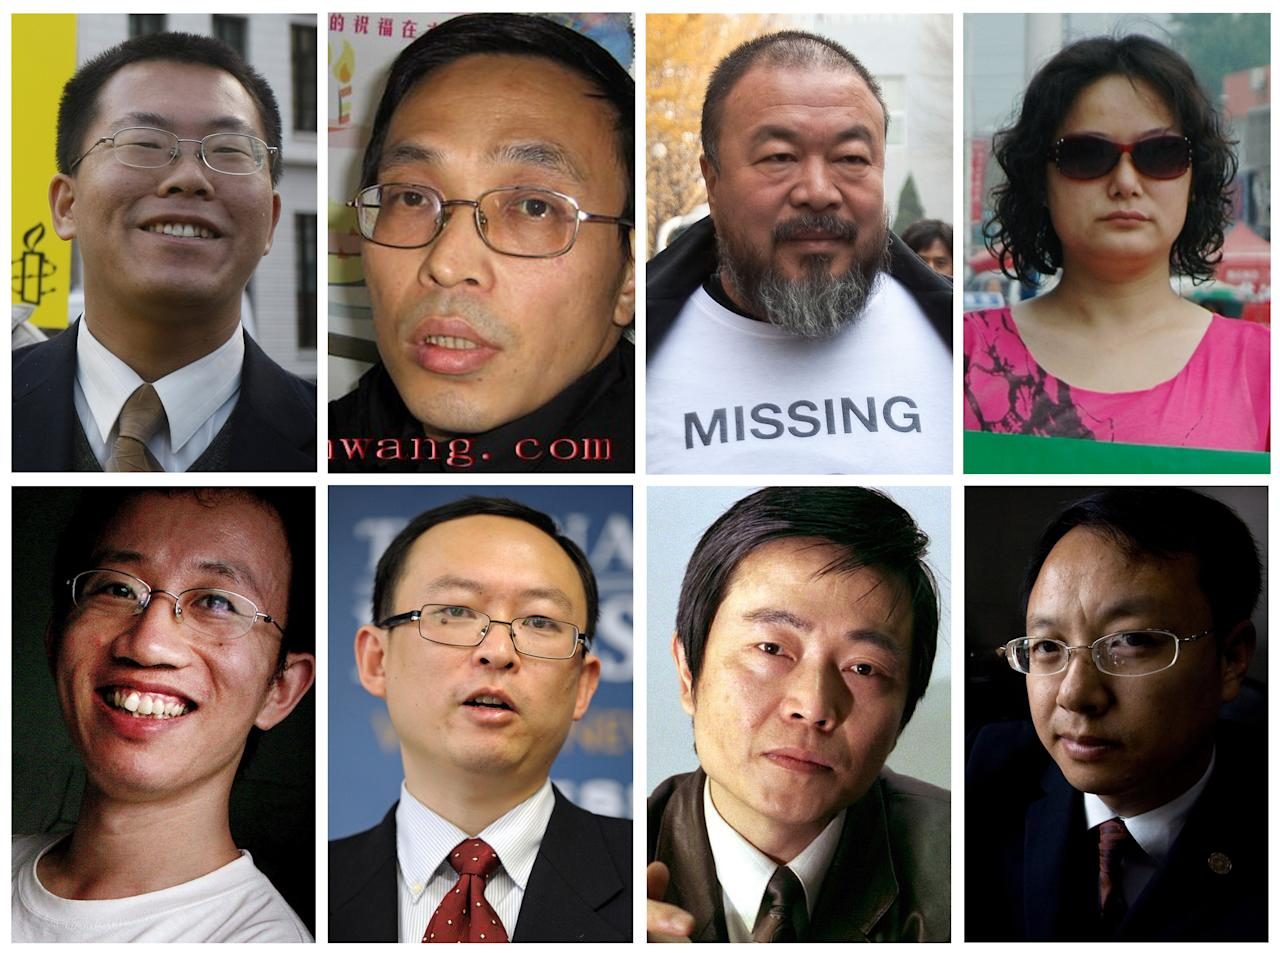 This combination of eight file photos shows a collection of Chinese activists and dissidents who have all commented on the current diplomatic dispute involving Chinese legal activist Chen Guangcheng. From top left to right are: Teng Biao, Li Jinsong, Ai Weiwei, Liu Shasha; and on the bottom, from left to right, Hu Jia, Yu Jie, Huang Qi, and Liu Xiaoyuan. (AP Photos)